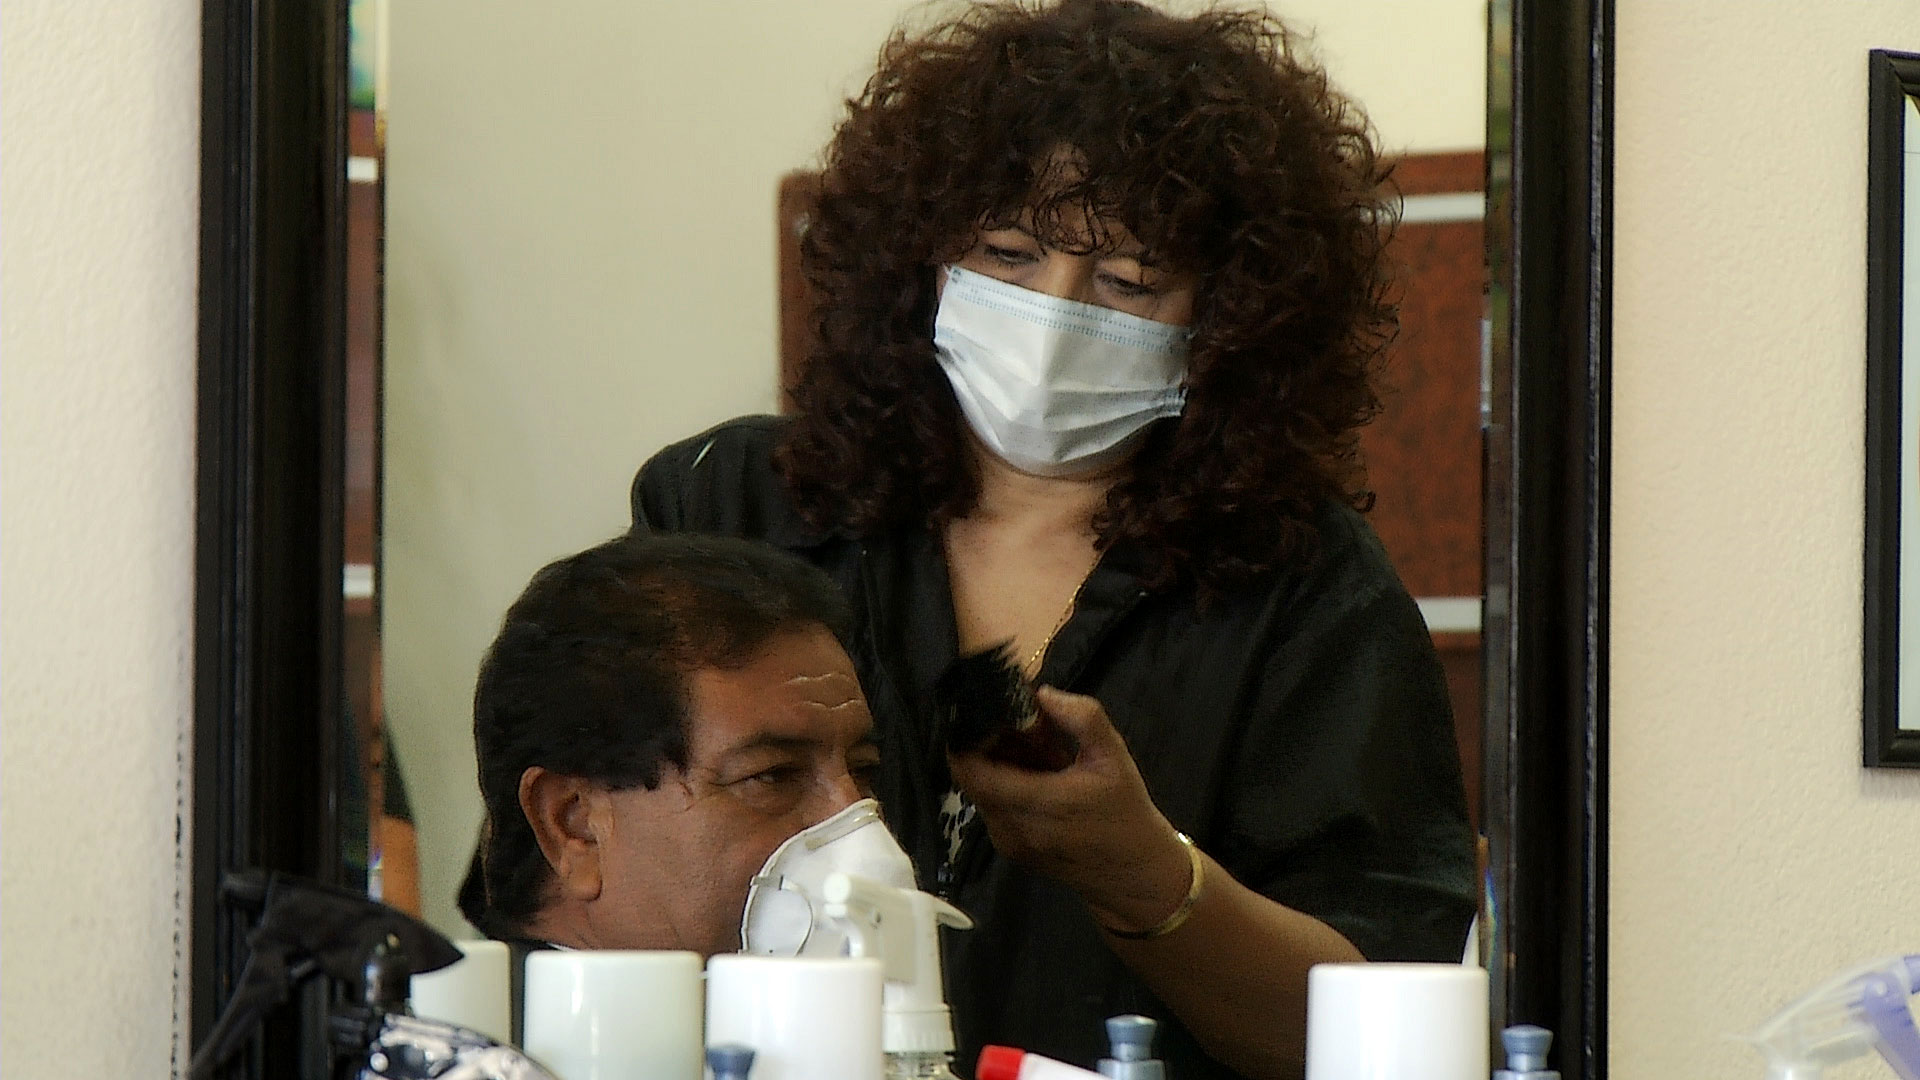 Both a customer and stylists wear face masks during a hair cut at Eclips Cuts Salon in Tucson on May 12, 2020. The salon reopened when Arizona eased COVID-19-related restrictions that had ordered barbers and salons to close.